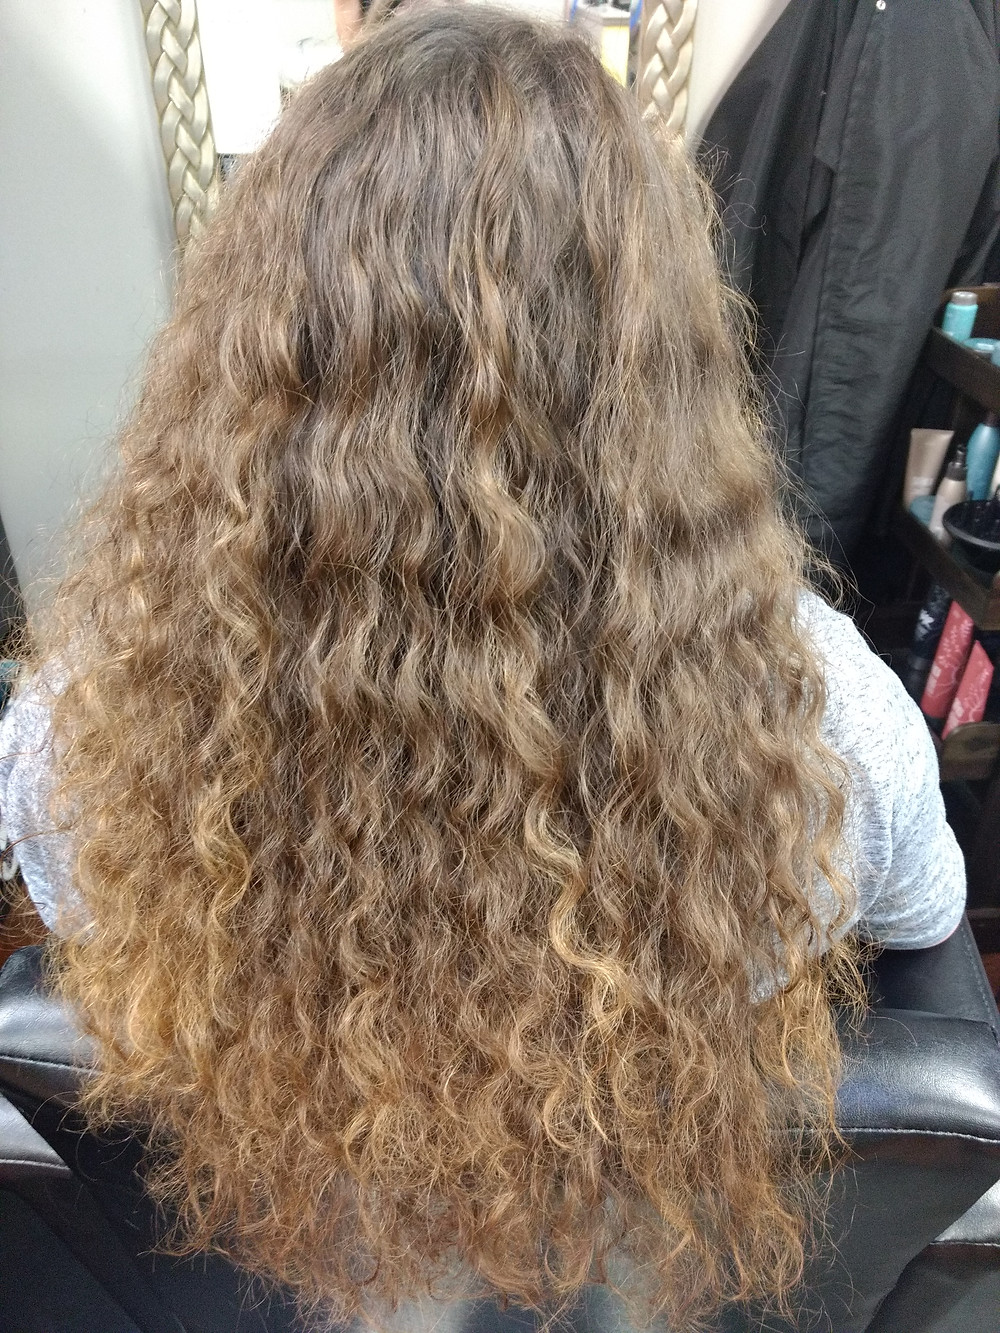 Before Curls Treatment